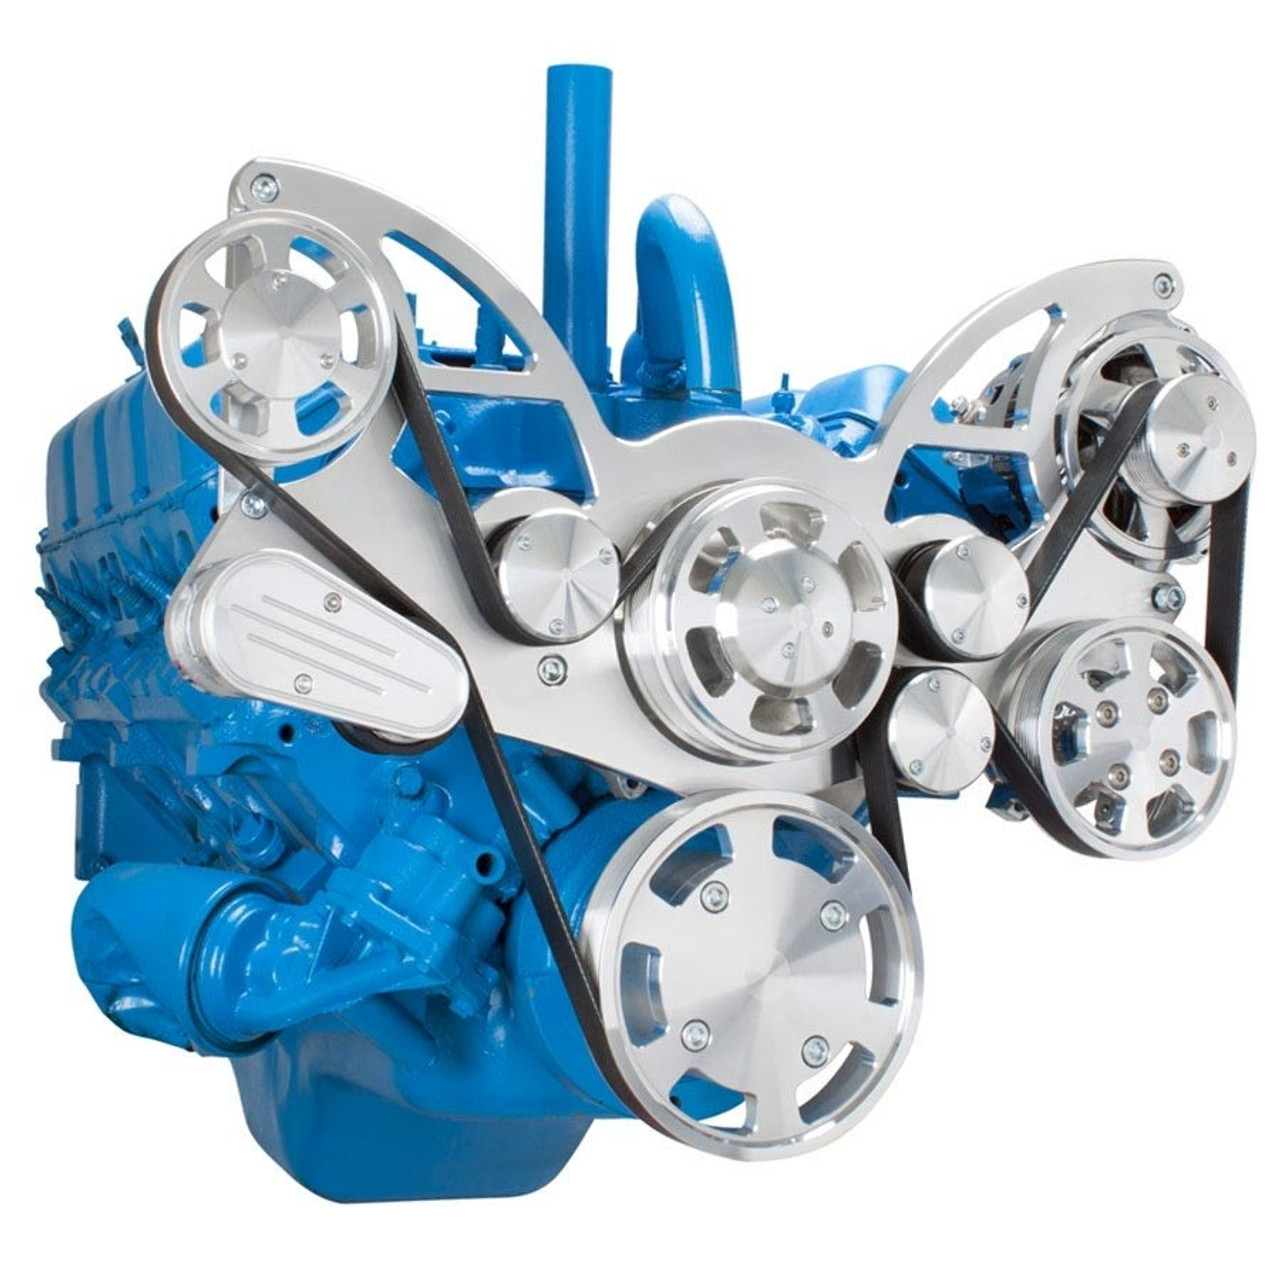 Serpentine Conversion Kit For Amc Jeep With Power Steering Alternator Wiring System 304 360 401